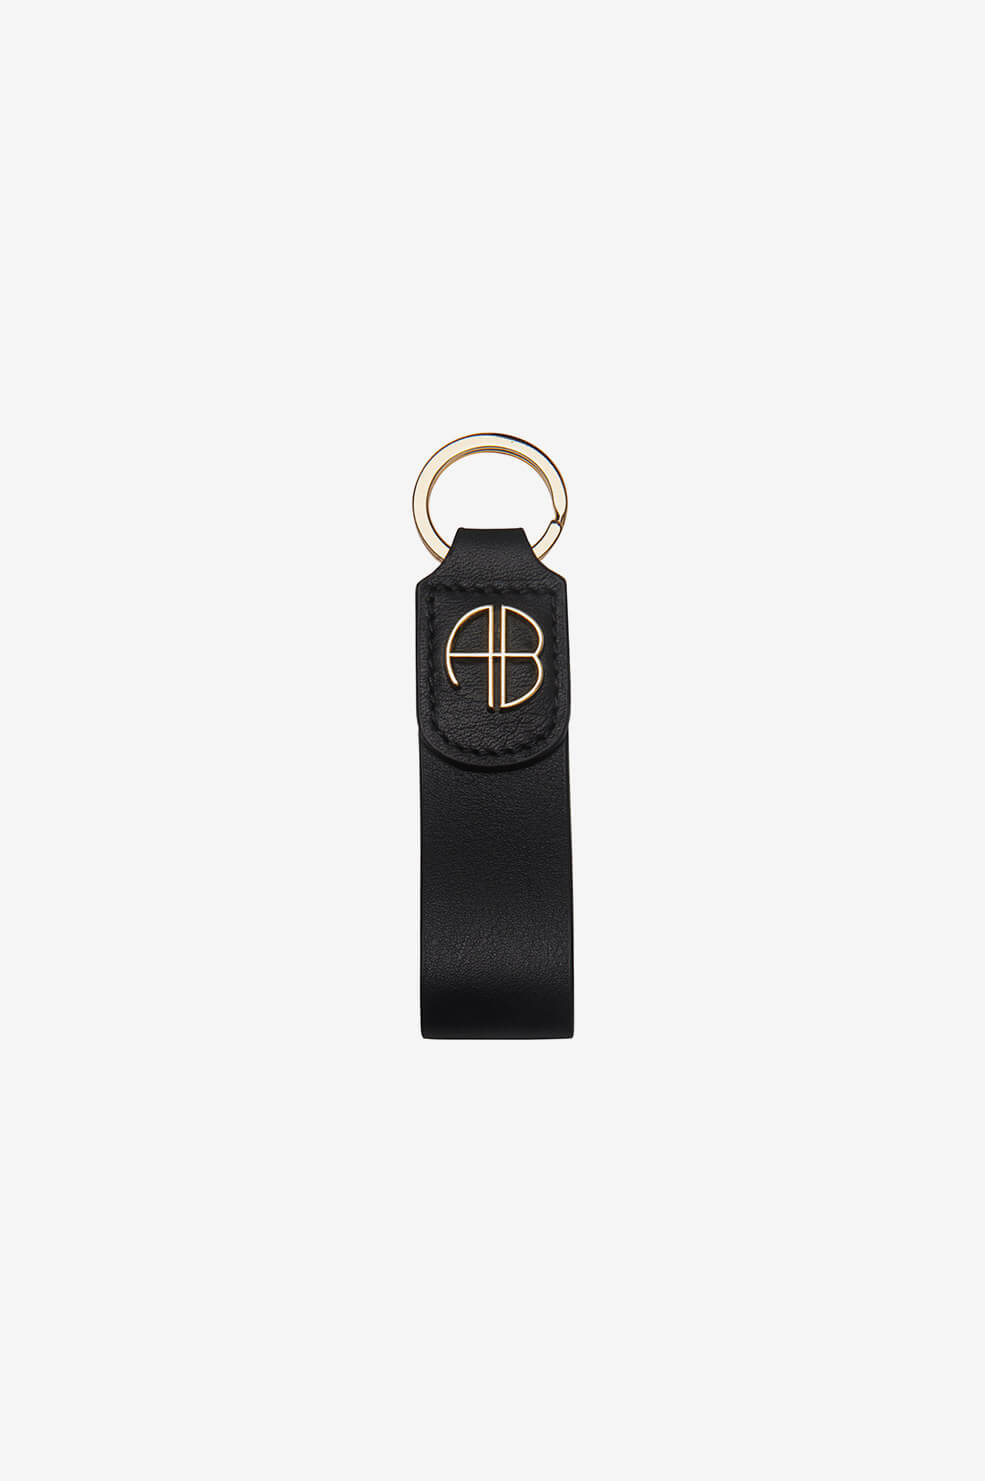 AB Key Chain  product image